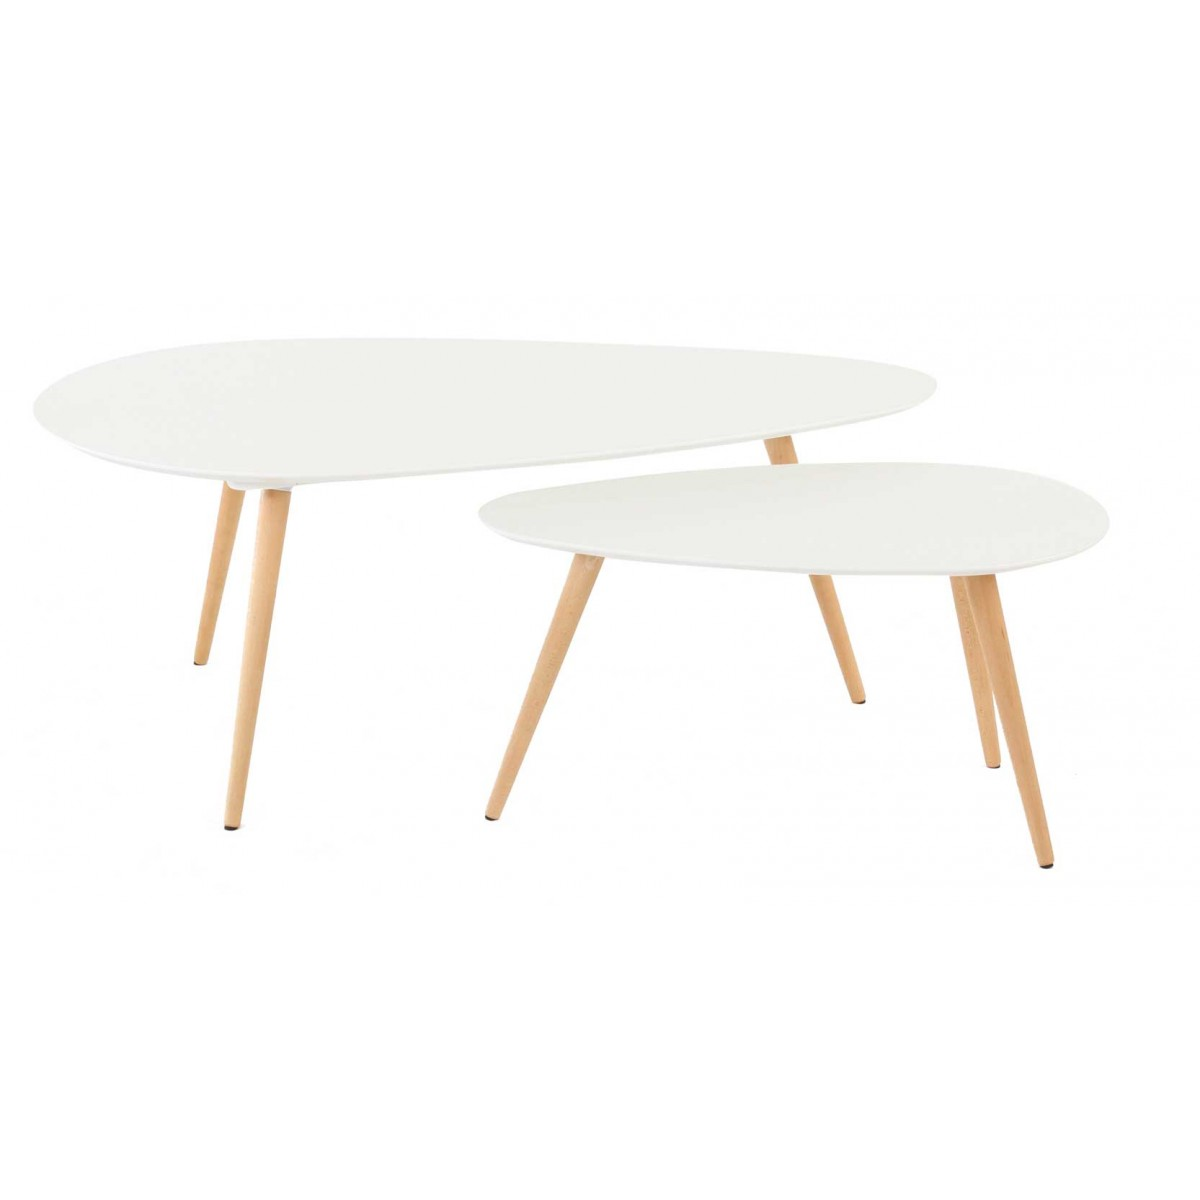 Table basse gigogne ovale mobilier design d coration d - Table basse design ovale ...